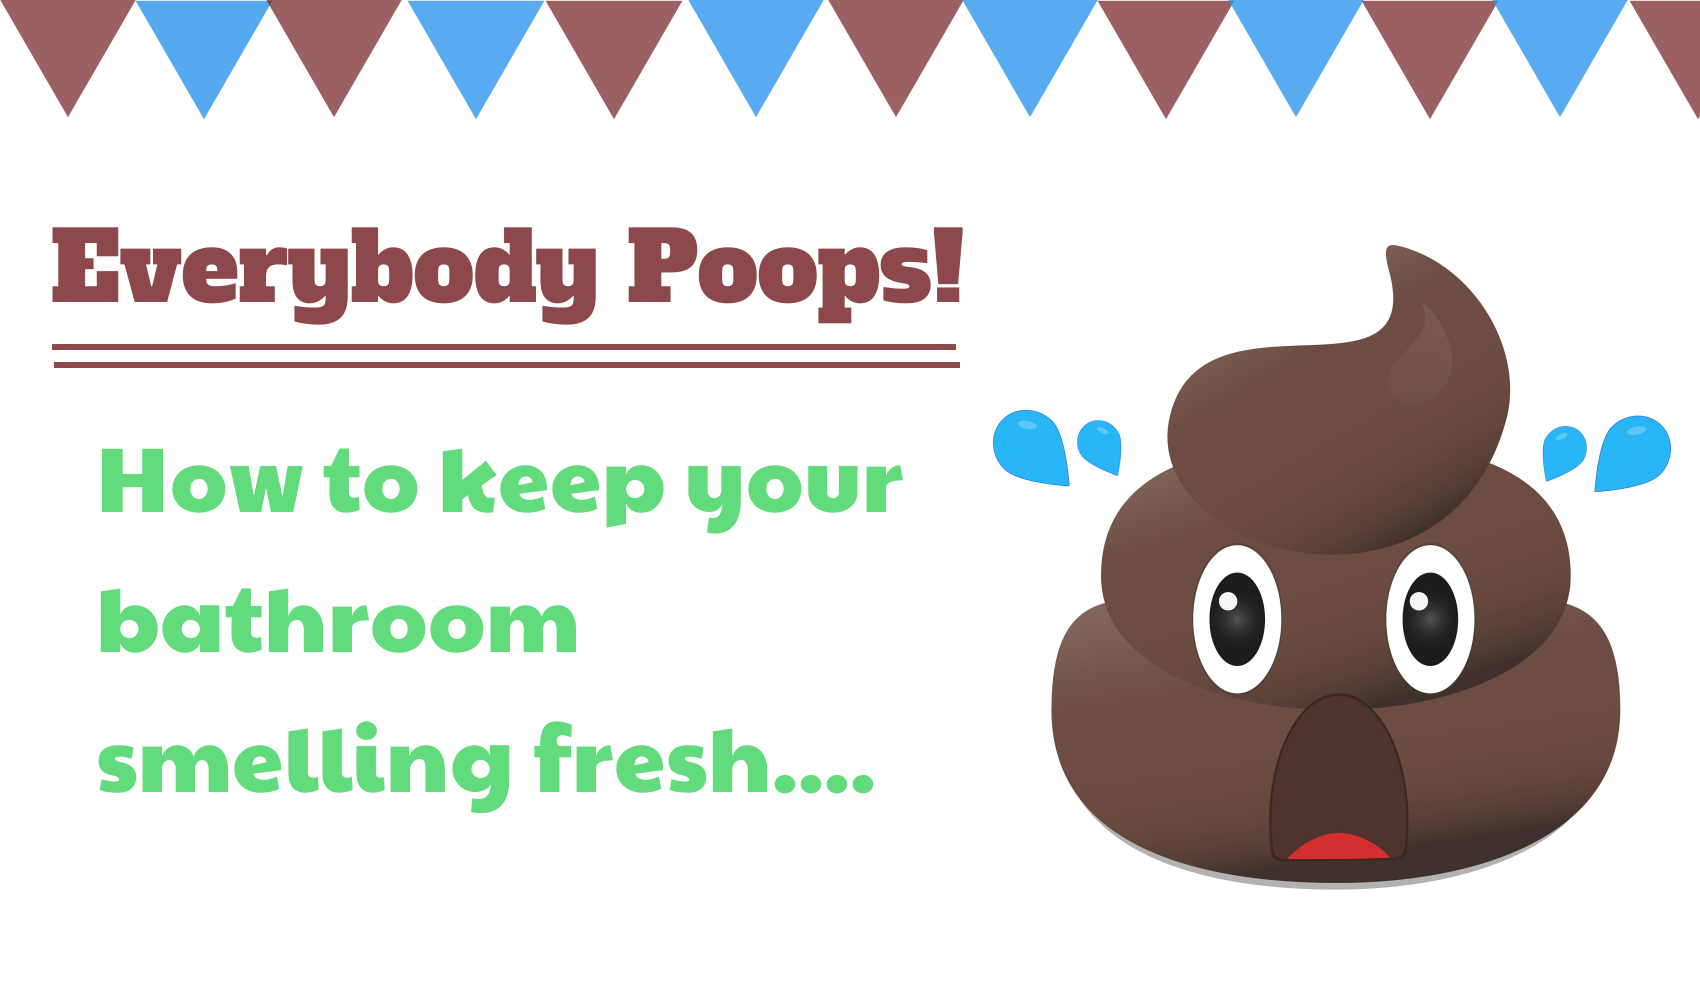 Everybody Poops! How To Keep The Bathroom Smelling Fresh - A Little